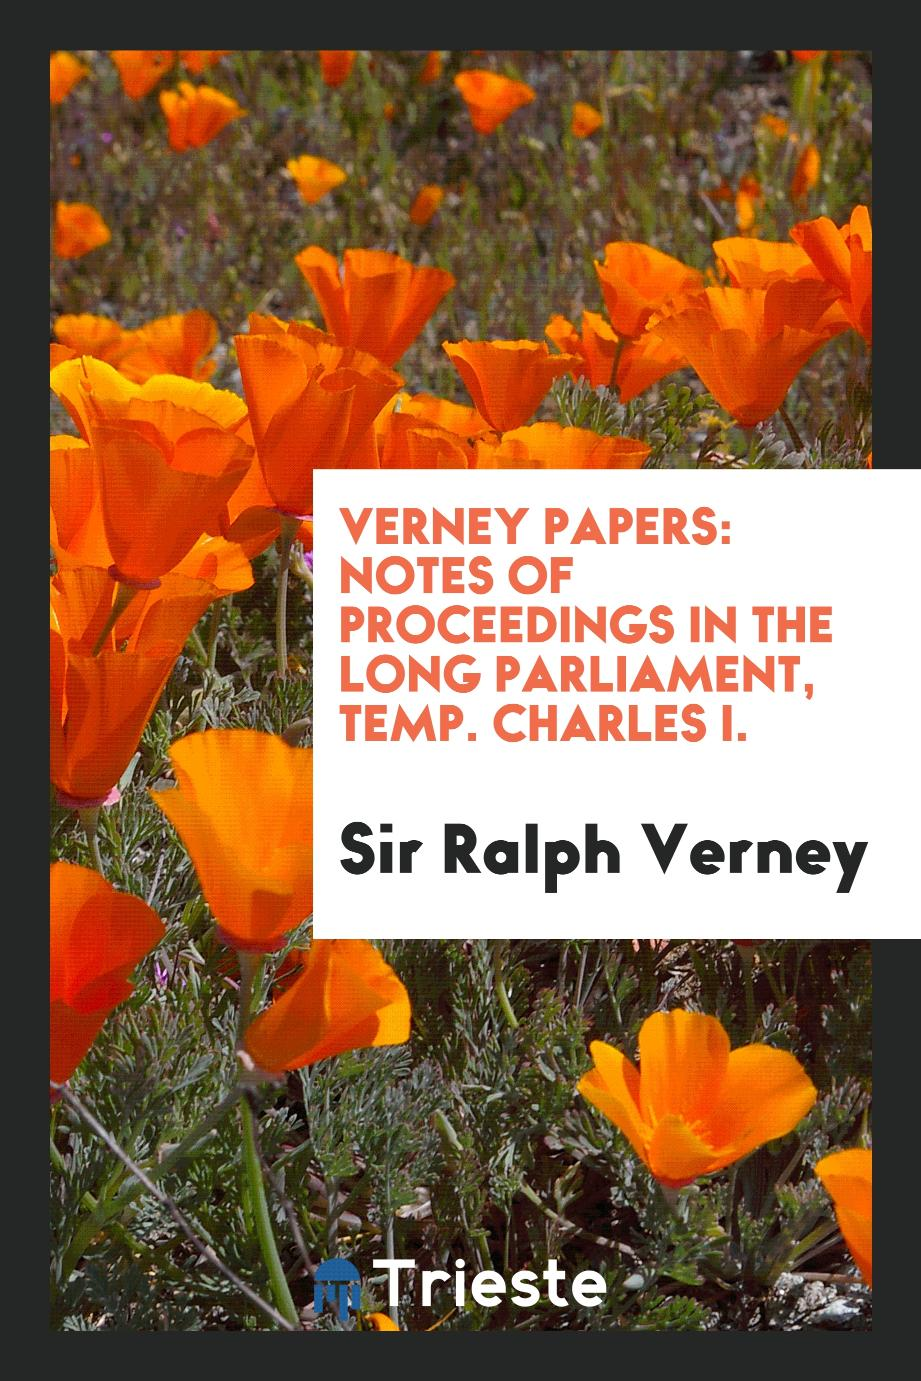 Verney Papers: Notes of Proceedings in the Long Parliament, Temp. Charles I.